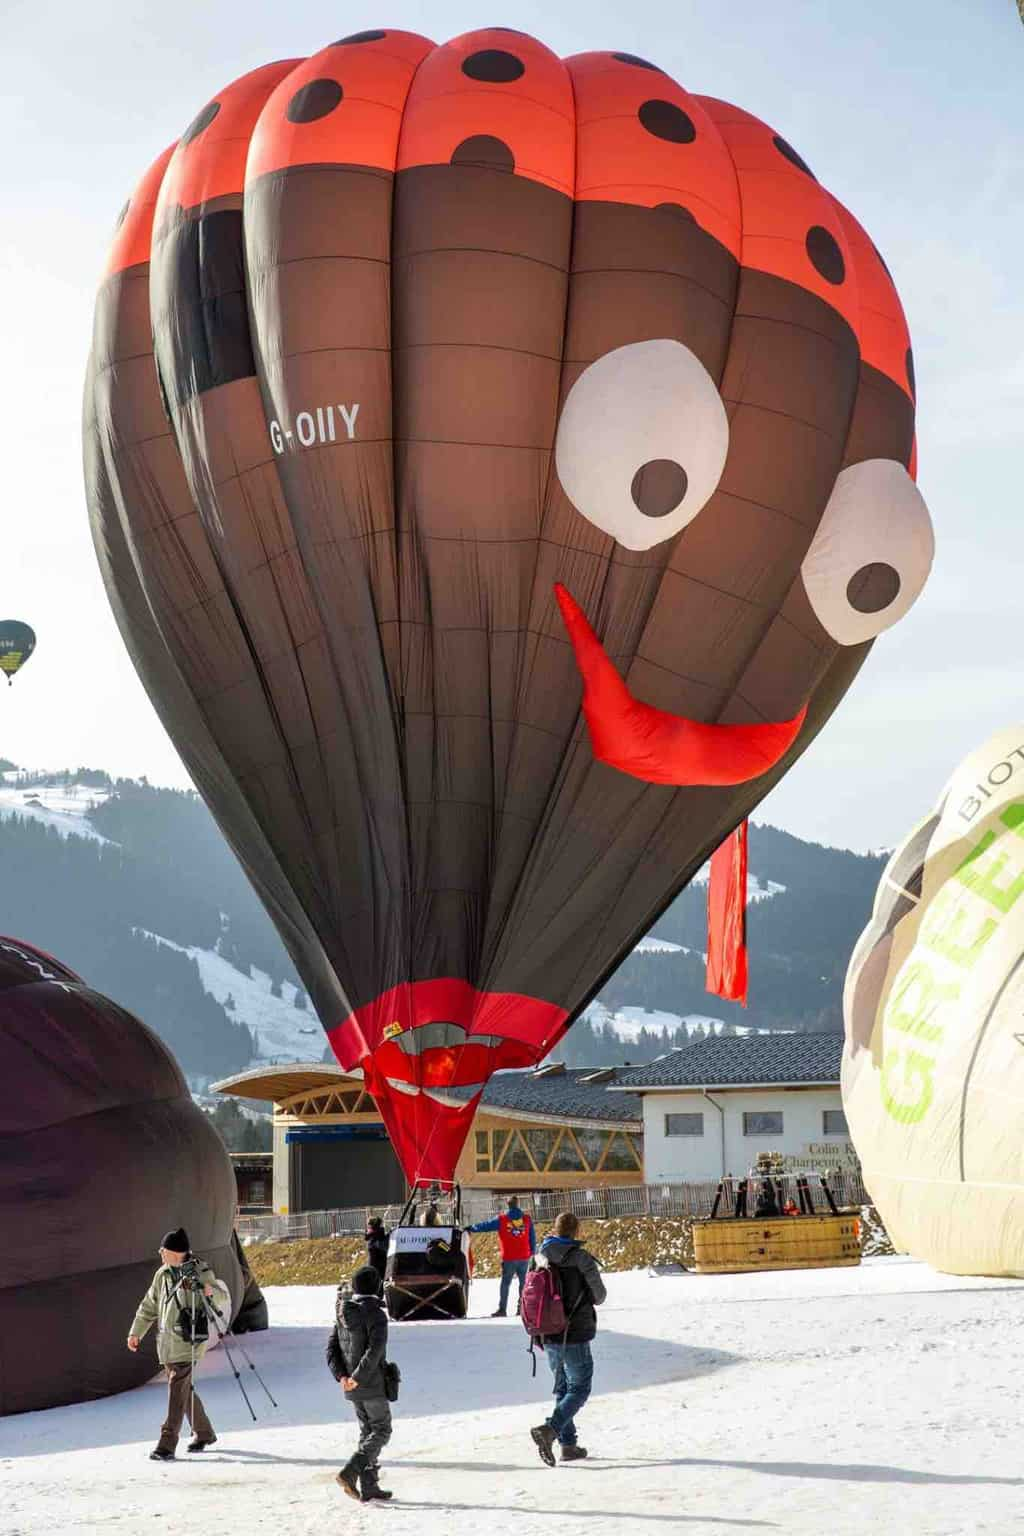 The Fabulous Hot Air Balloons at Chateaux d'Oex